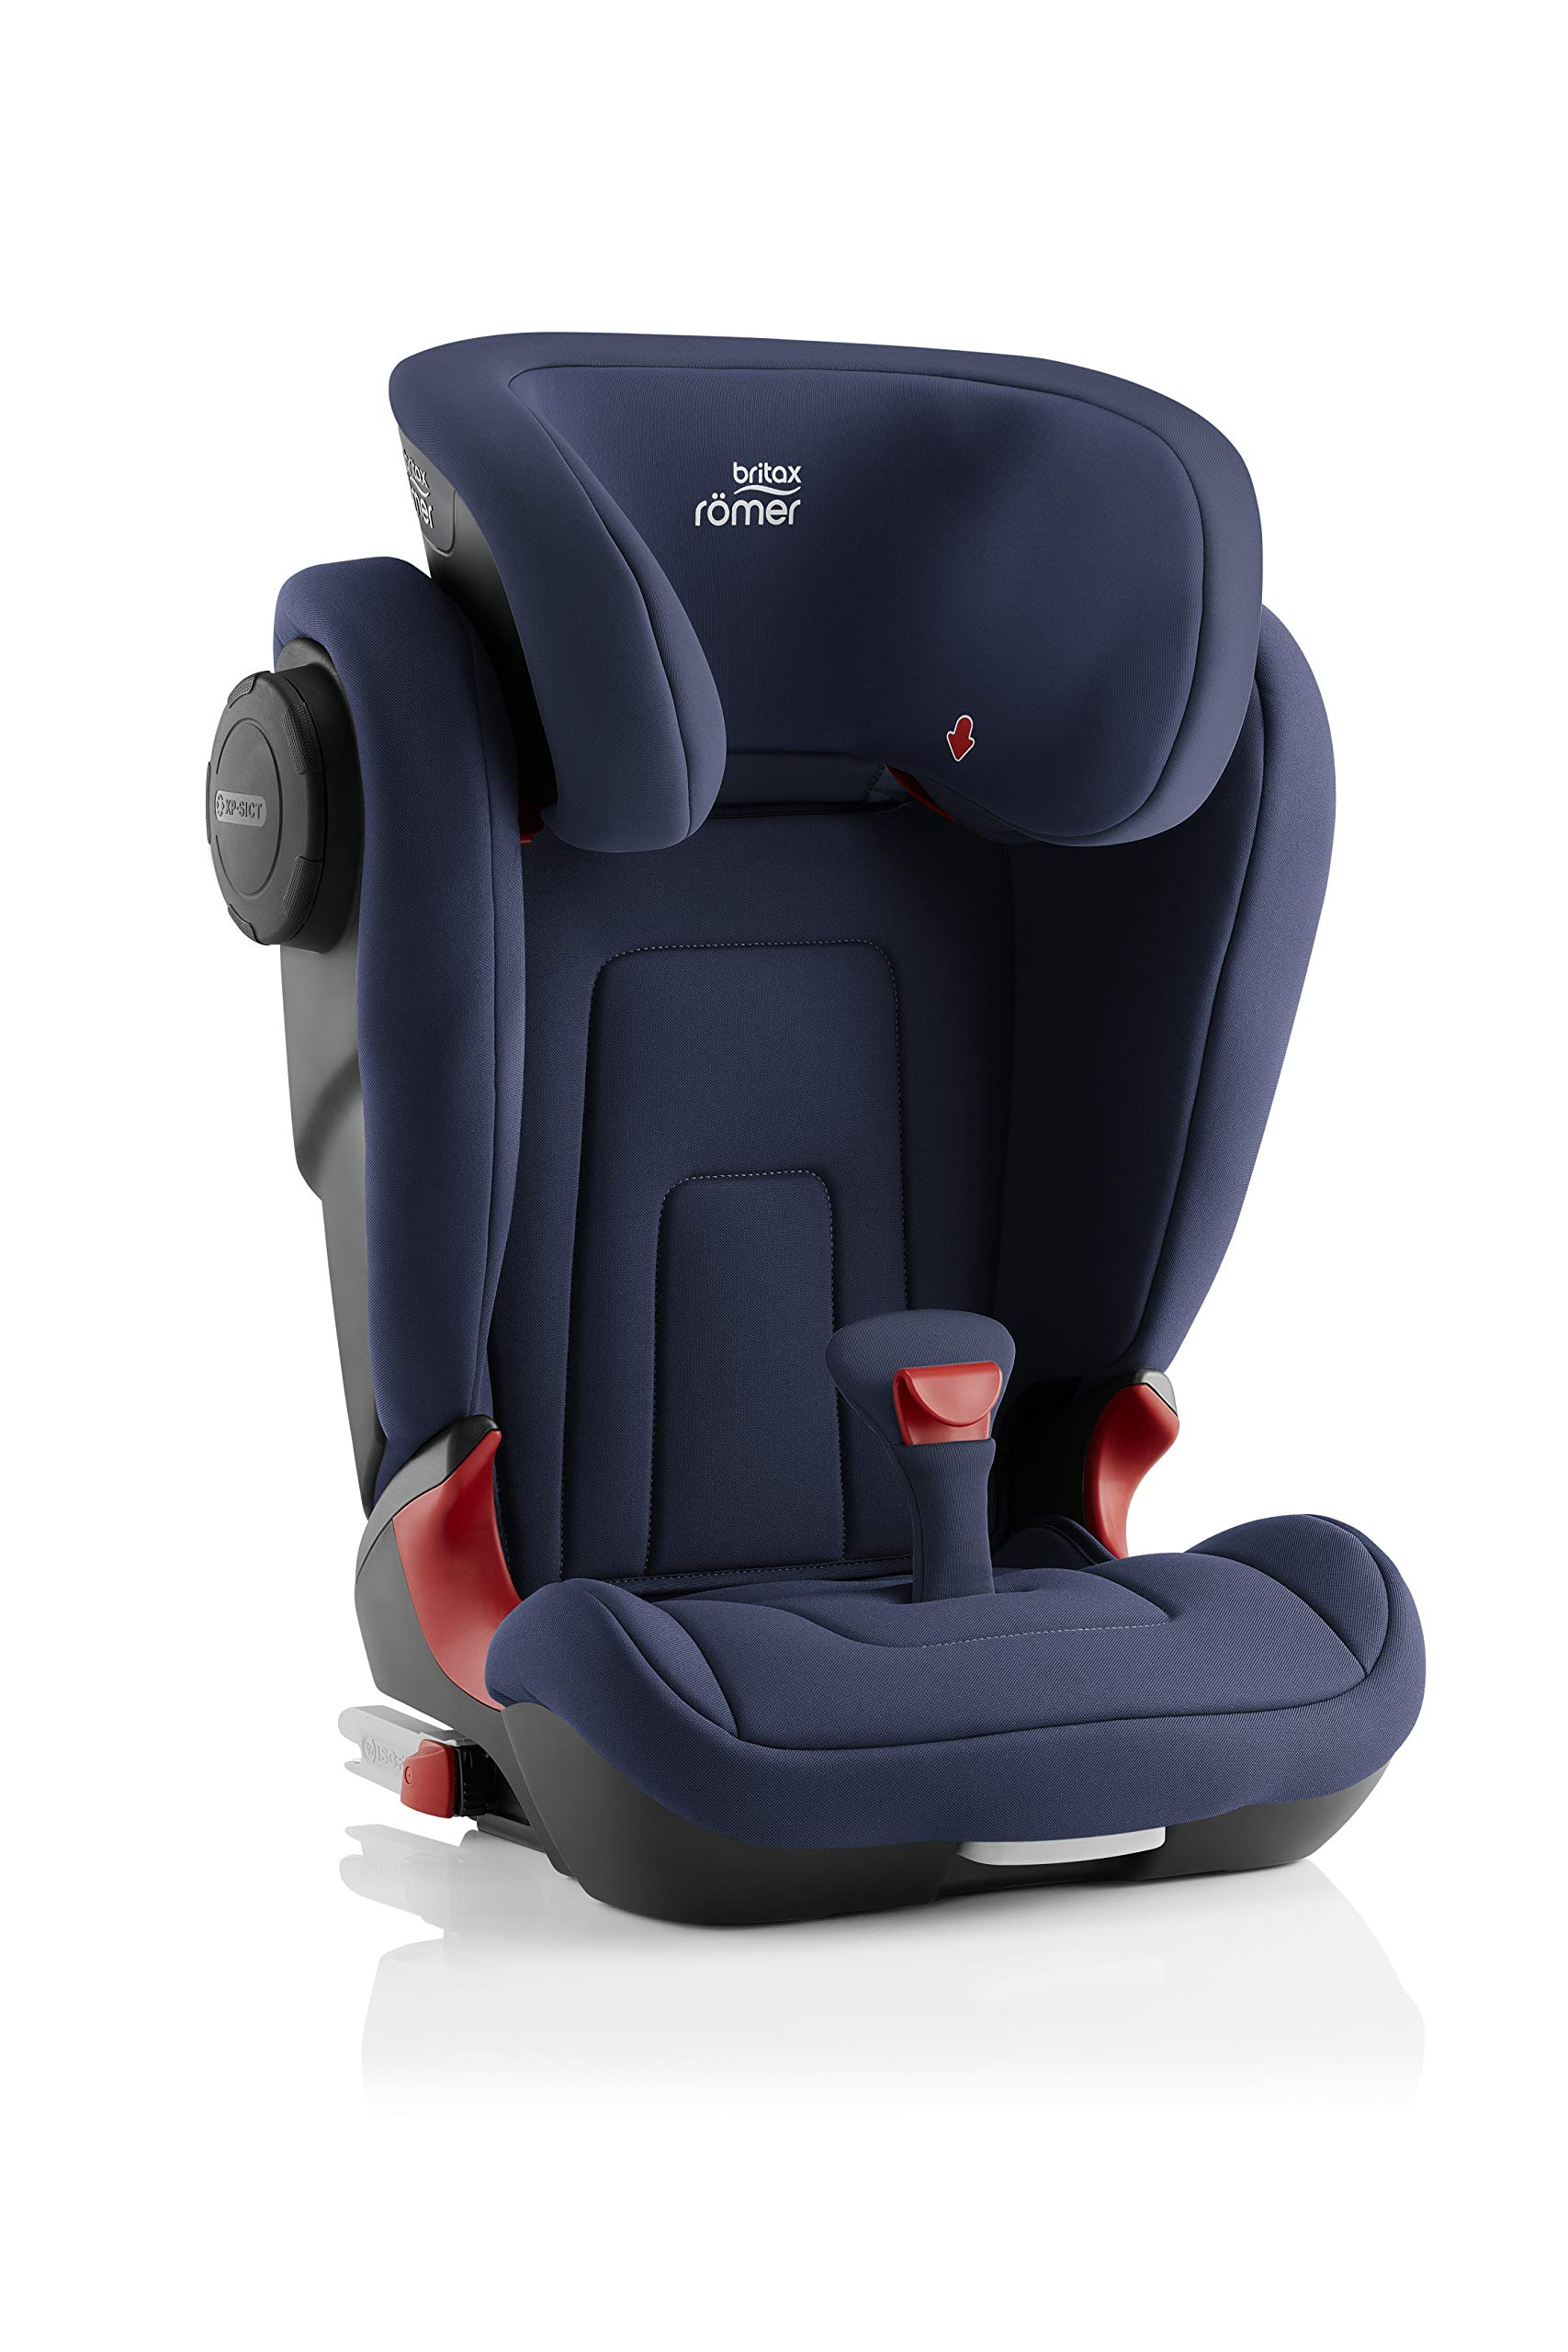 Britax Römer KIDFIX² S Group 2-3 (15-36kg) Car Seat - Moonlight Blue  Advanced side impact protection - sict offers superior protection to your child in the event of a side collision. reducing impact forces by minimising the distance between the car and the car seat. Secure guard - helps to protect your child's delicate abdominal area by adding an extra - a 4th - contact point to the 3-point seat belt. High back booster - protects your child in 3 ways: provides head to hip protection; belt guides provide correct positioning of the seat belt and the padded headrest provides safety and comfort. 3